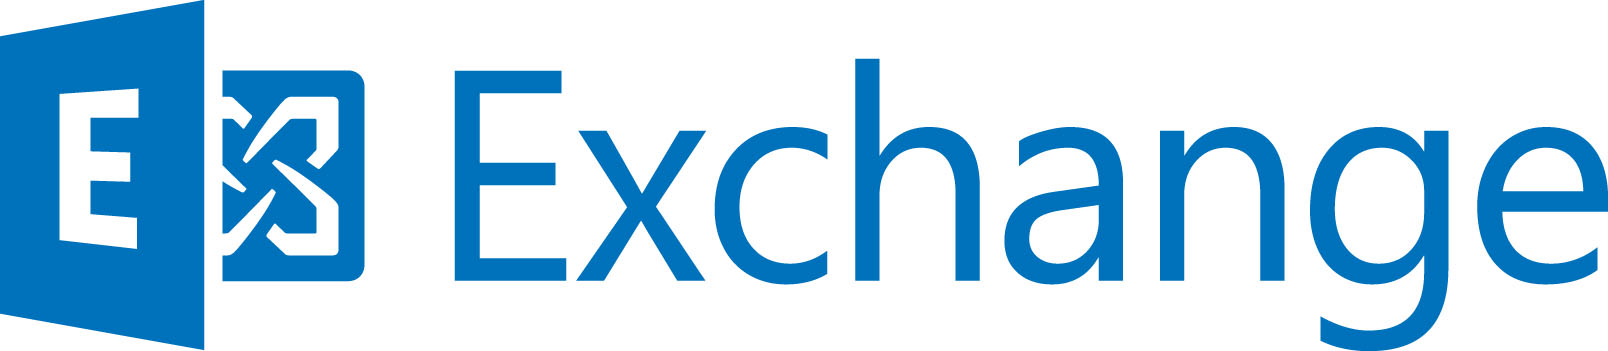 Exchange Appointment Search logo